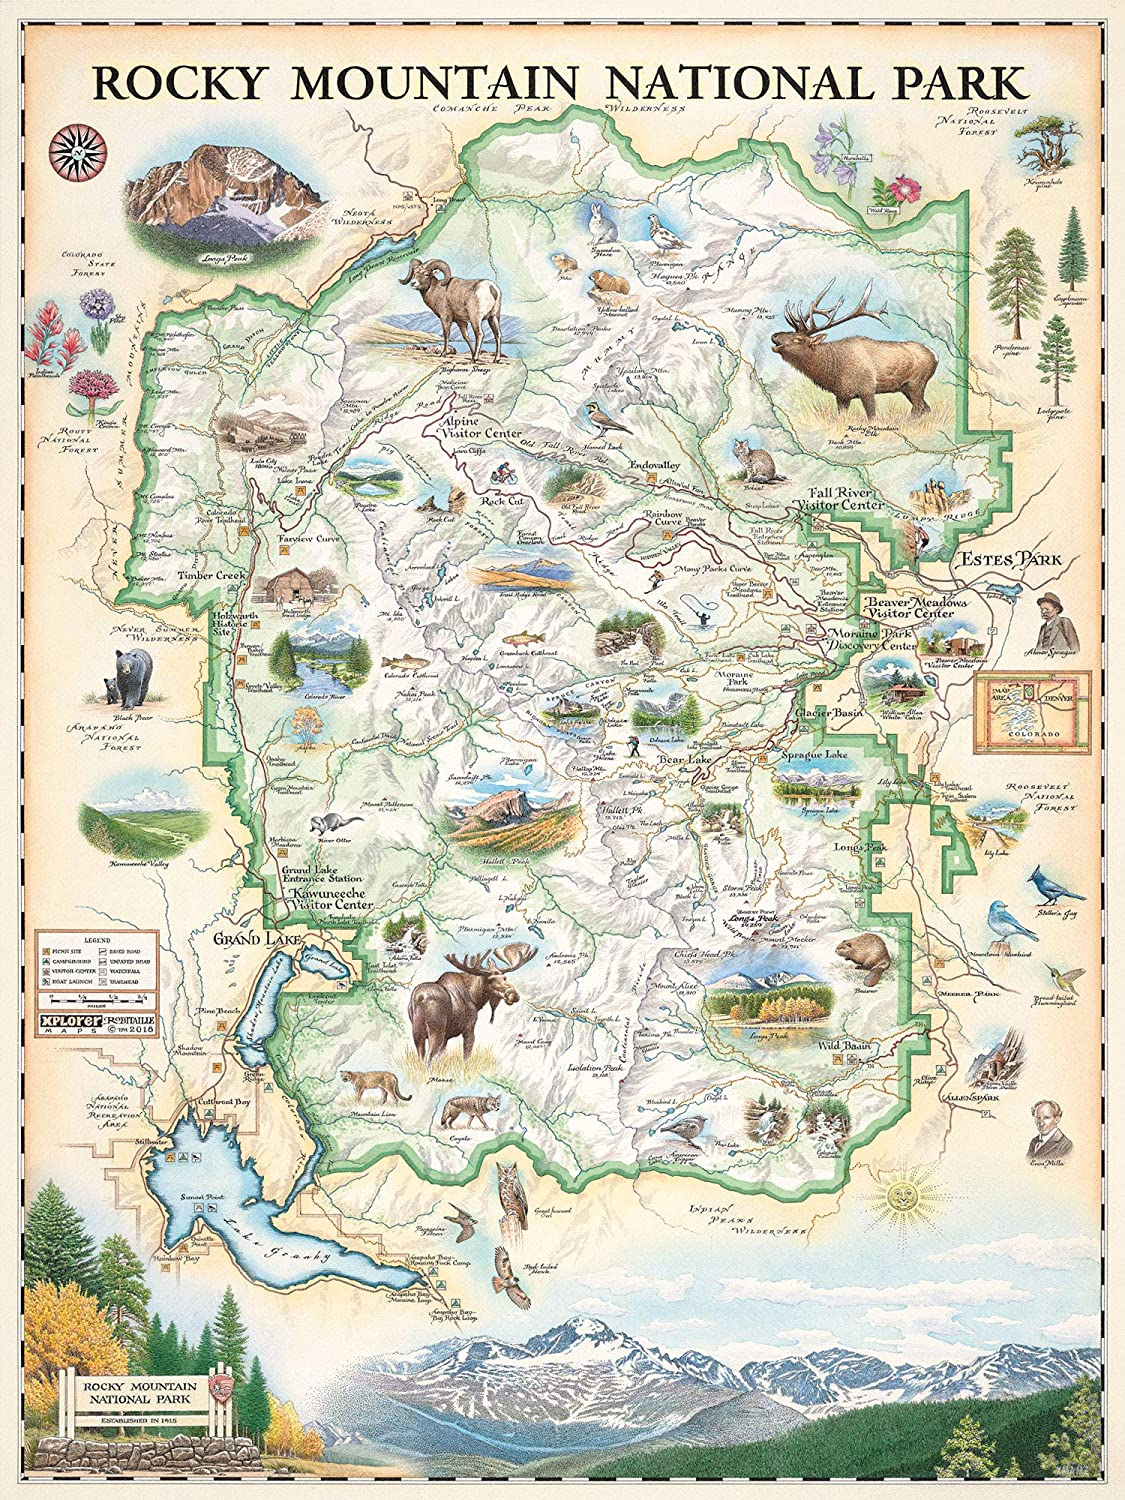 Amazon Com Rocky Mountain National Park Map Wall Art Poster Authentic Hand Drawn Maps In Old World Antique Style Art Deco Lithographic Print Posters Prints